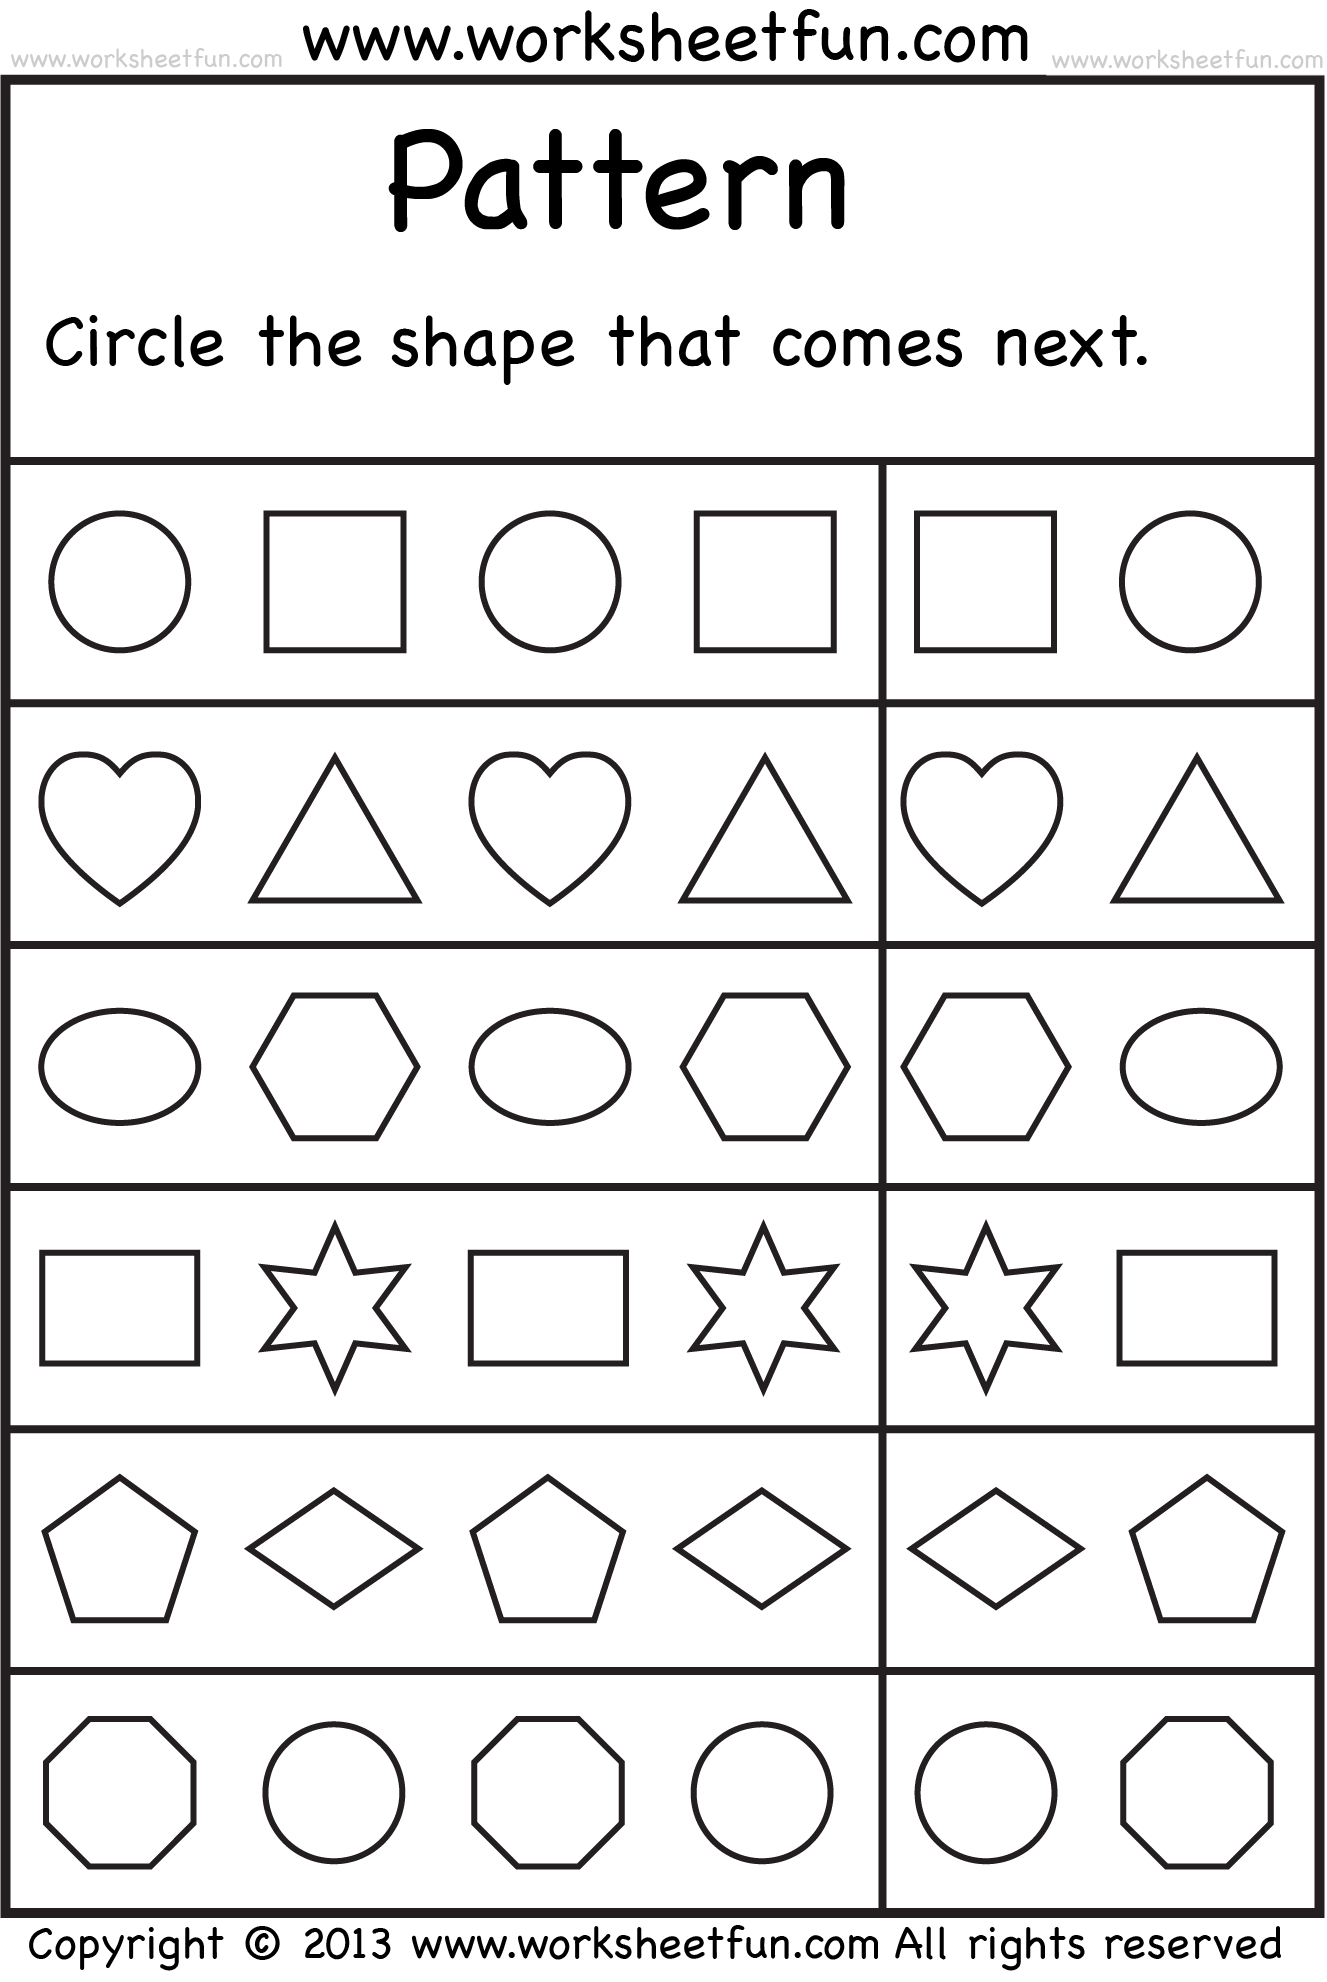 Weirdmailus  Surprising  Images About School Worksheets On Pinterest  Number Words  With Fair  Images About School Worksheets On Pinterest  Number Words Alphabet Worksheets And Free Printable Kindergarten Worksheets With Charming Pictograph Worksheets For Grade  Also Action Word Worksheets In Addition Kindergarten Number Writing Practice Worksheets And Connectives Ks Worksheet As Well As Silent B Words Worksheet Additionally Simple Machines Worksheet Th Grade From Pinterestcom With Weirdmailus  Fair  Images About School Worksheets On Pinterest  Number Words  With Charming  Images About School Worksheets On Pinterest  Number Words Alphabet Worksheets And Free Printable Kindergarten Worksheets And Surprising Pictograph Worksheets For Grade  Also Action Word Worksheets In Addition Kindergarten Number Writing Practice Worksheets From Pinterestcom